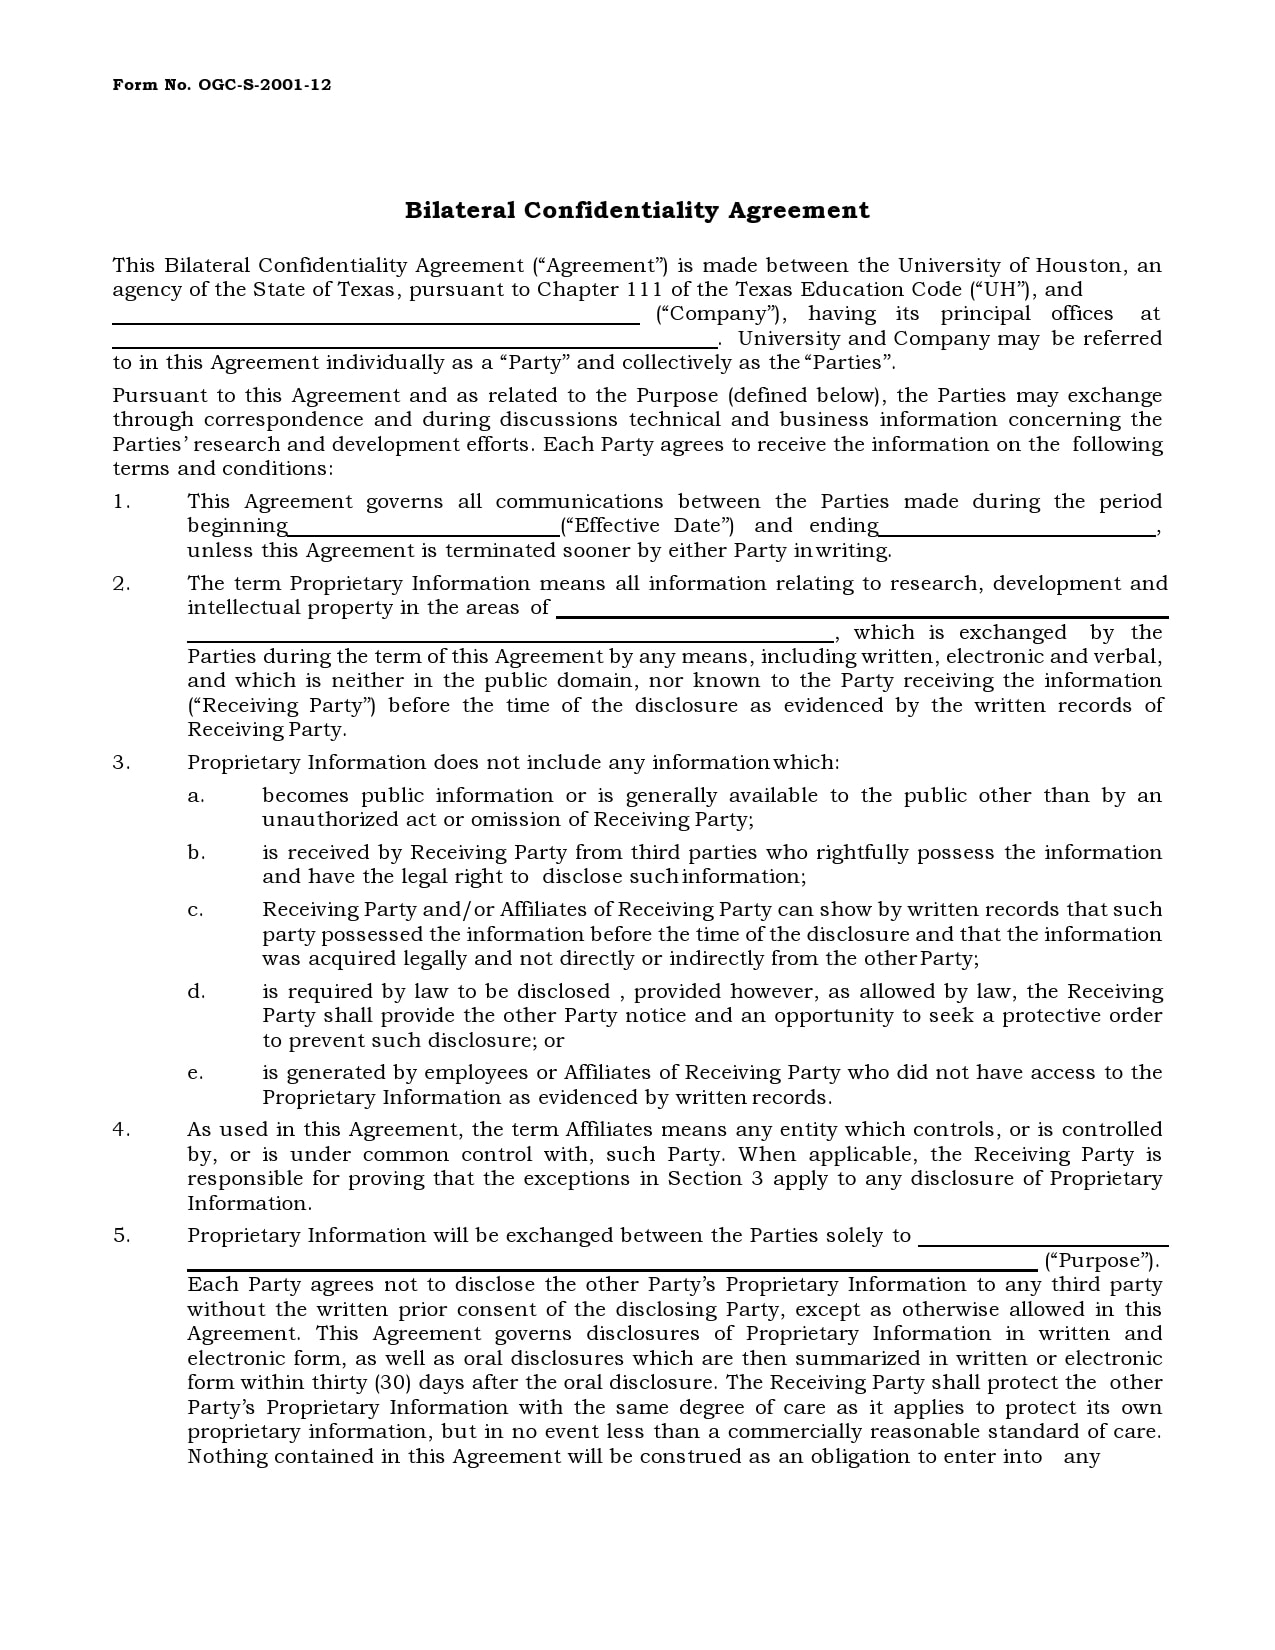 confidentiality agreement template 08